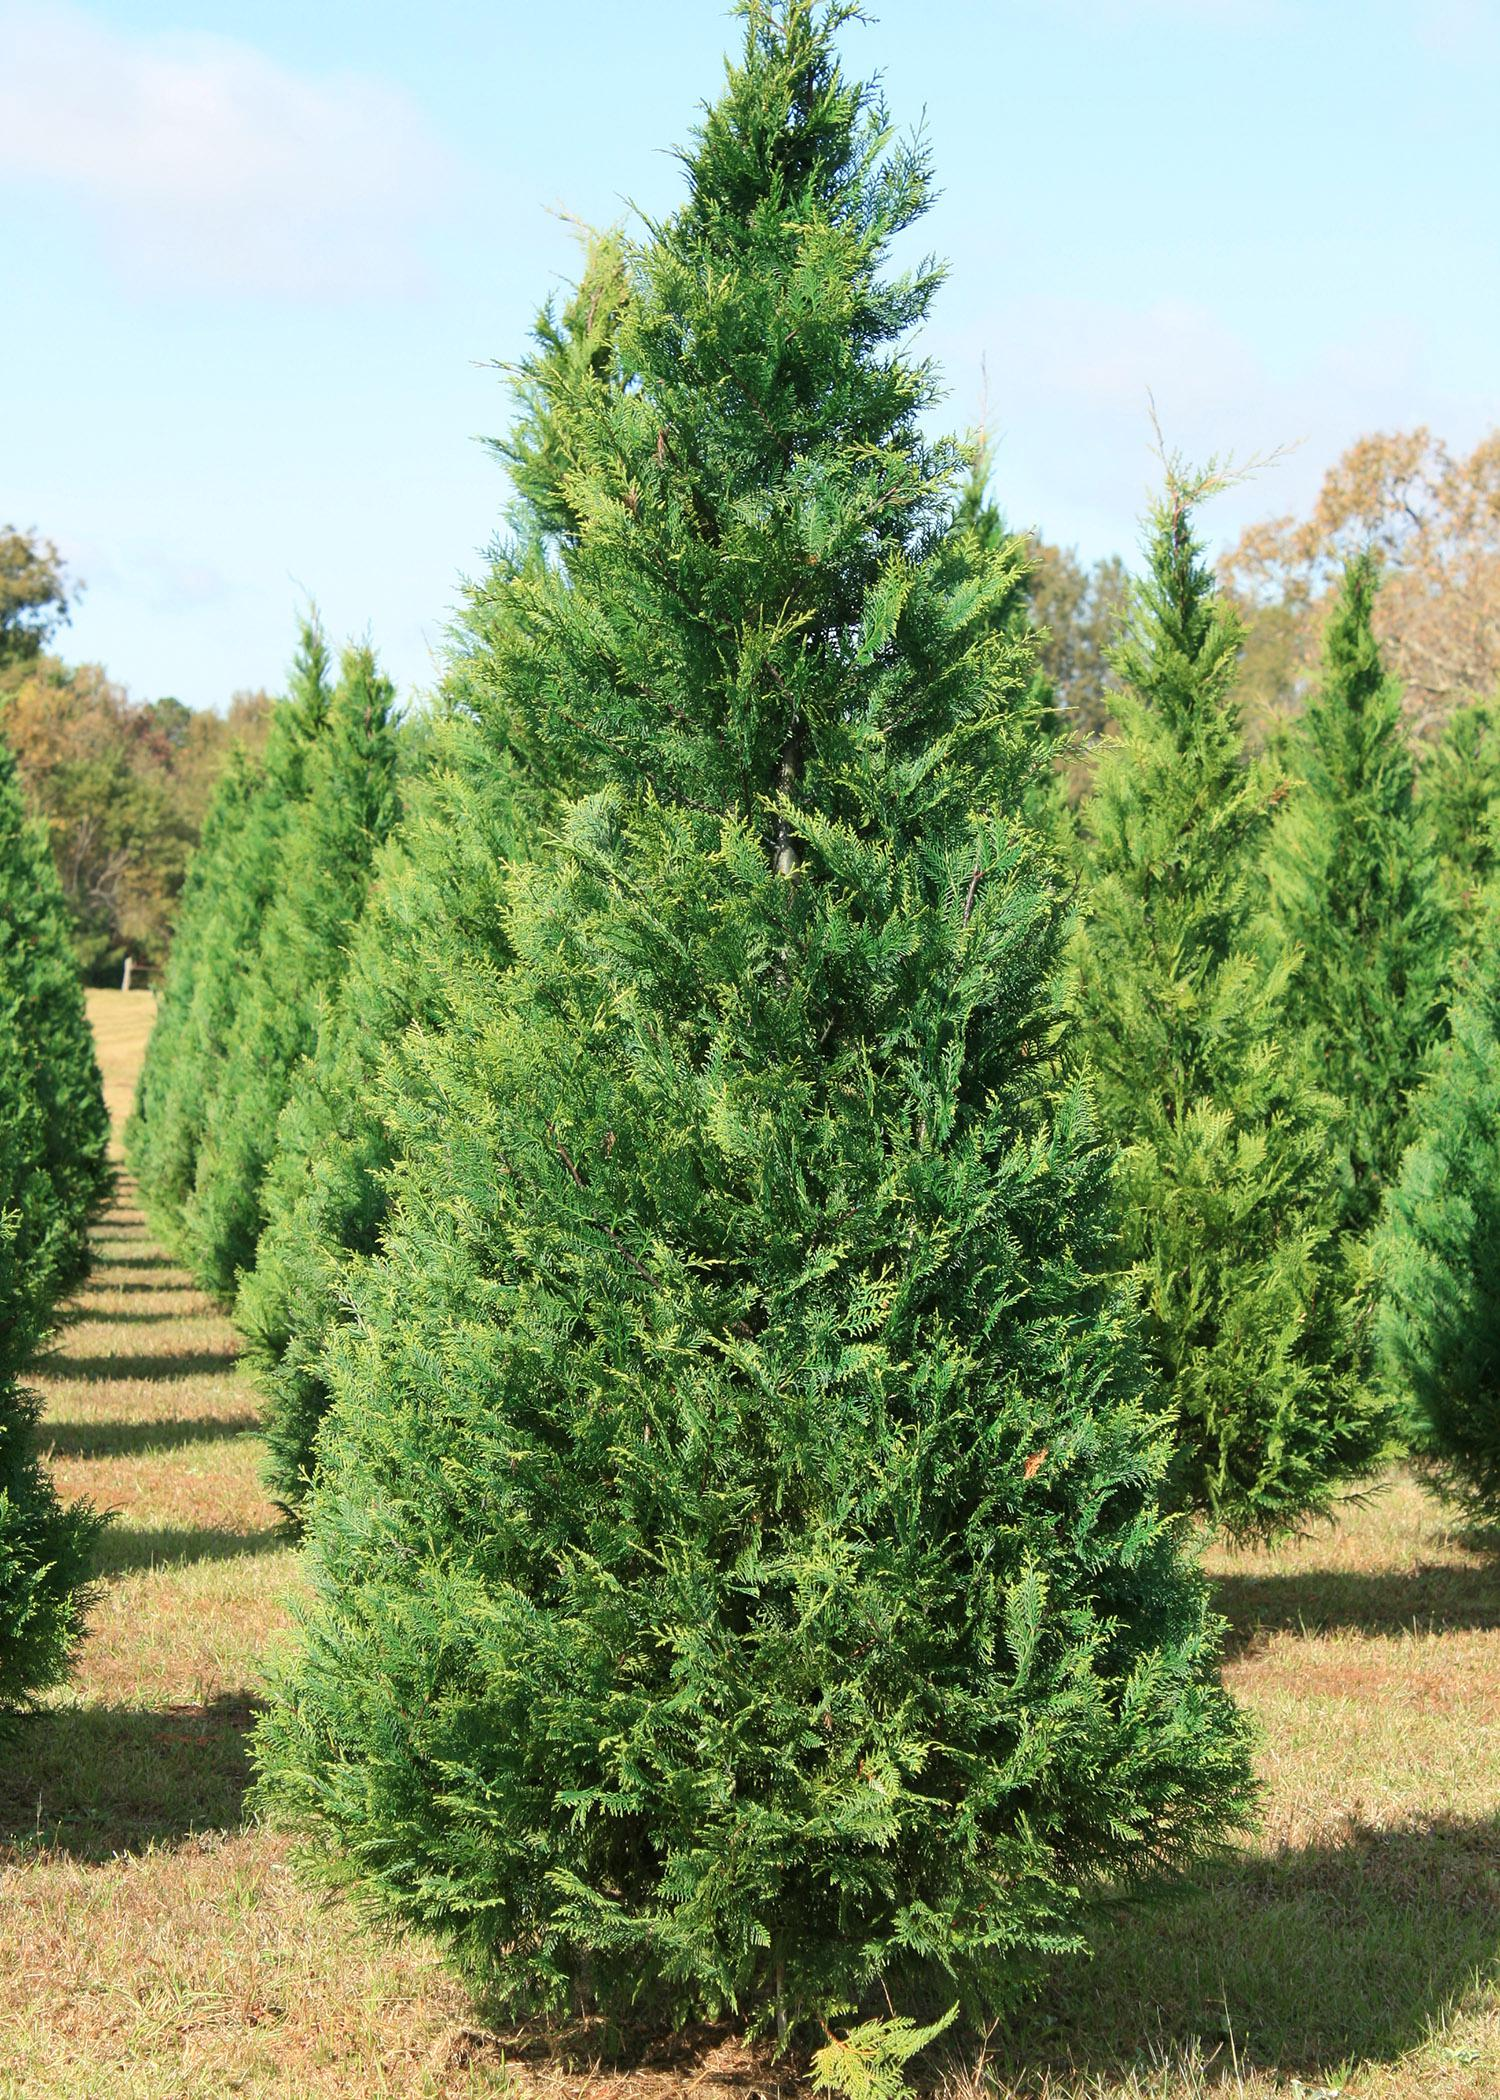 Mississippi Christmas tree growers offer high-quality, beautiful trees for holiday decorating. These Leyland cypress trees are growing at Thomley's Tree Farm in Hattiesburg. (Photo by MSU Extension Service/Gary Bachman)